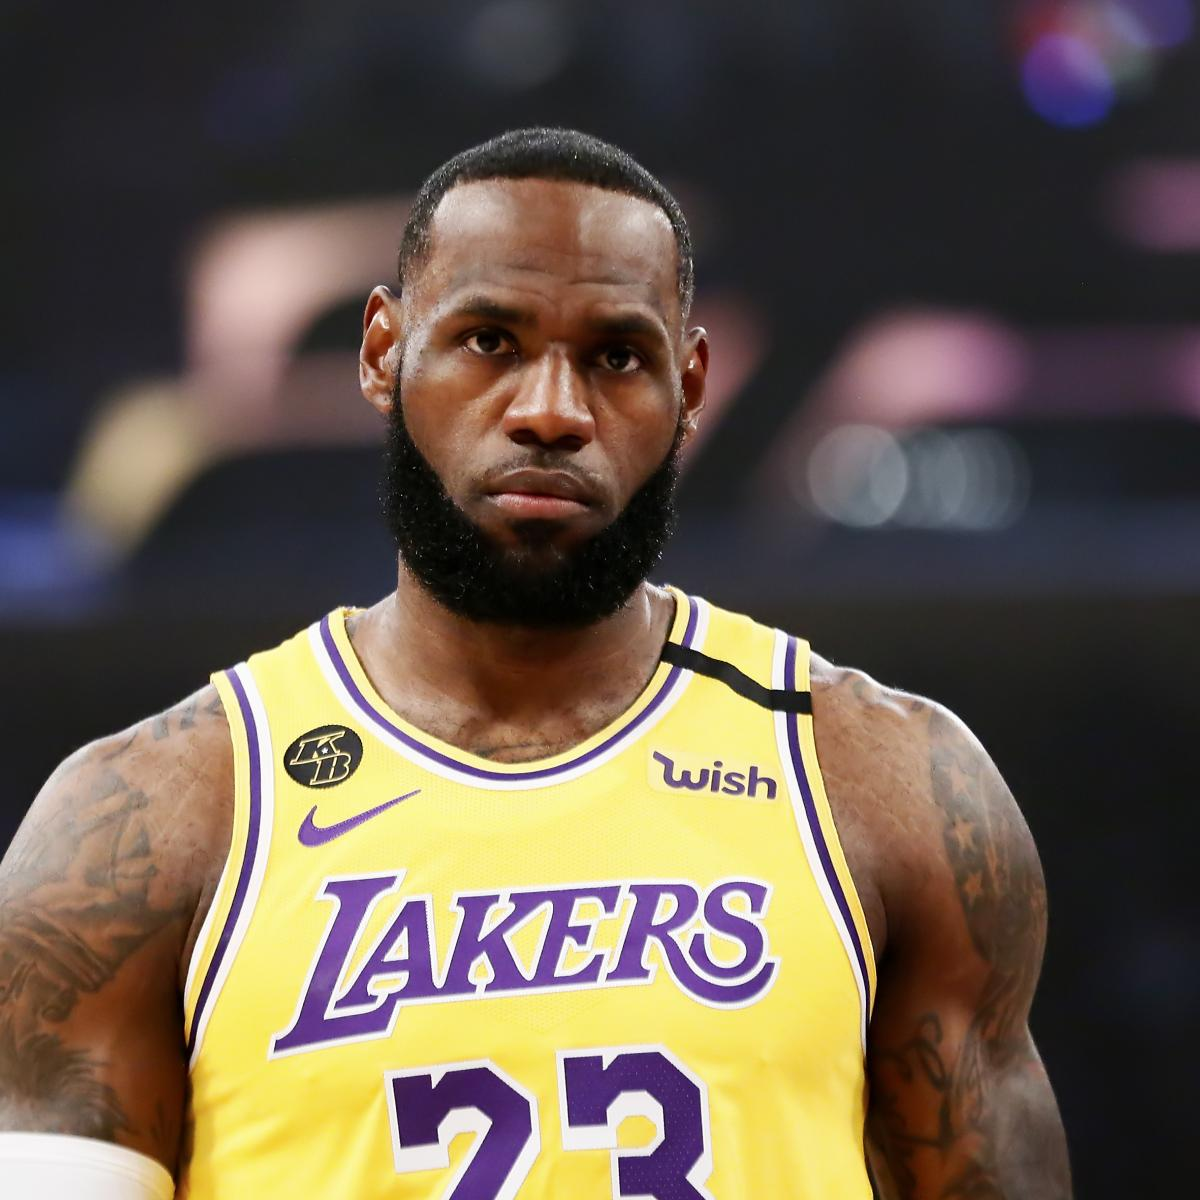 Lakers News: LeBron James Discusses His Basketball IQ, Photographic Memory